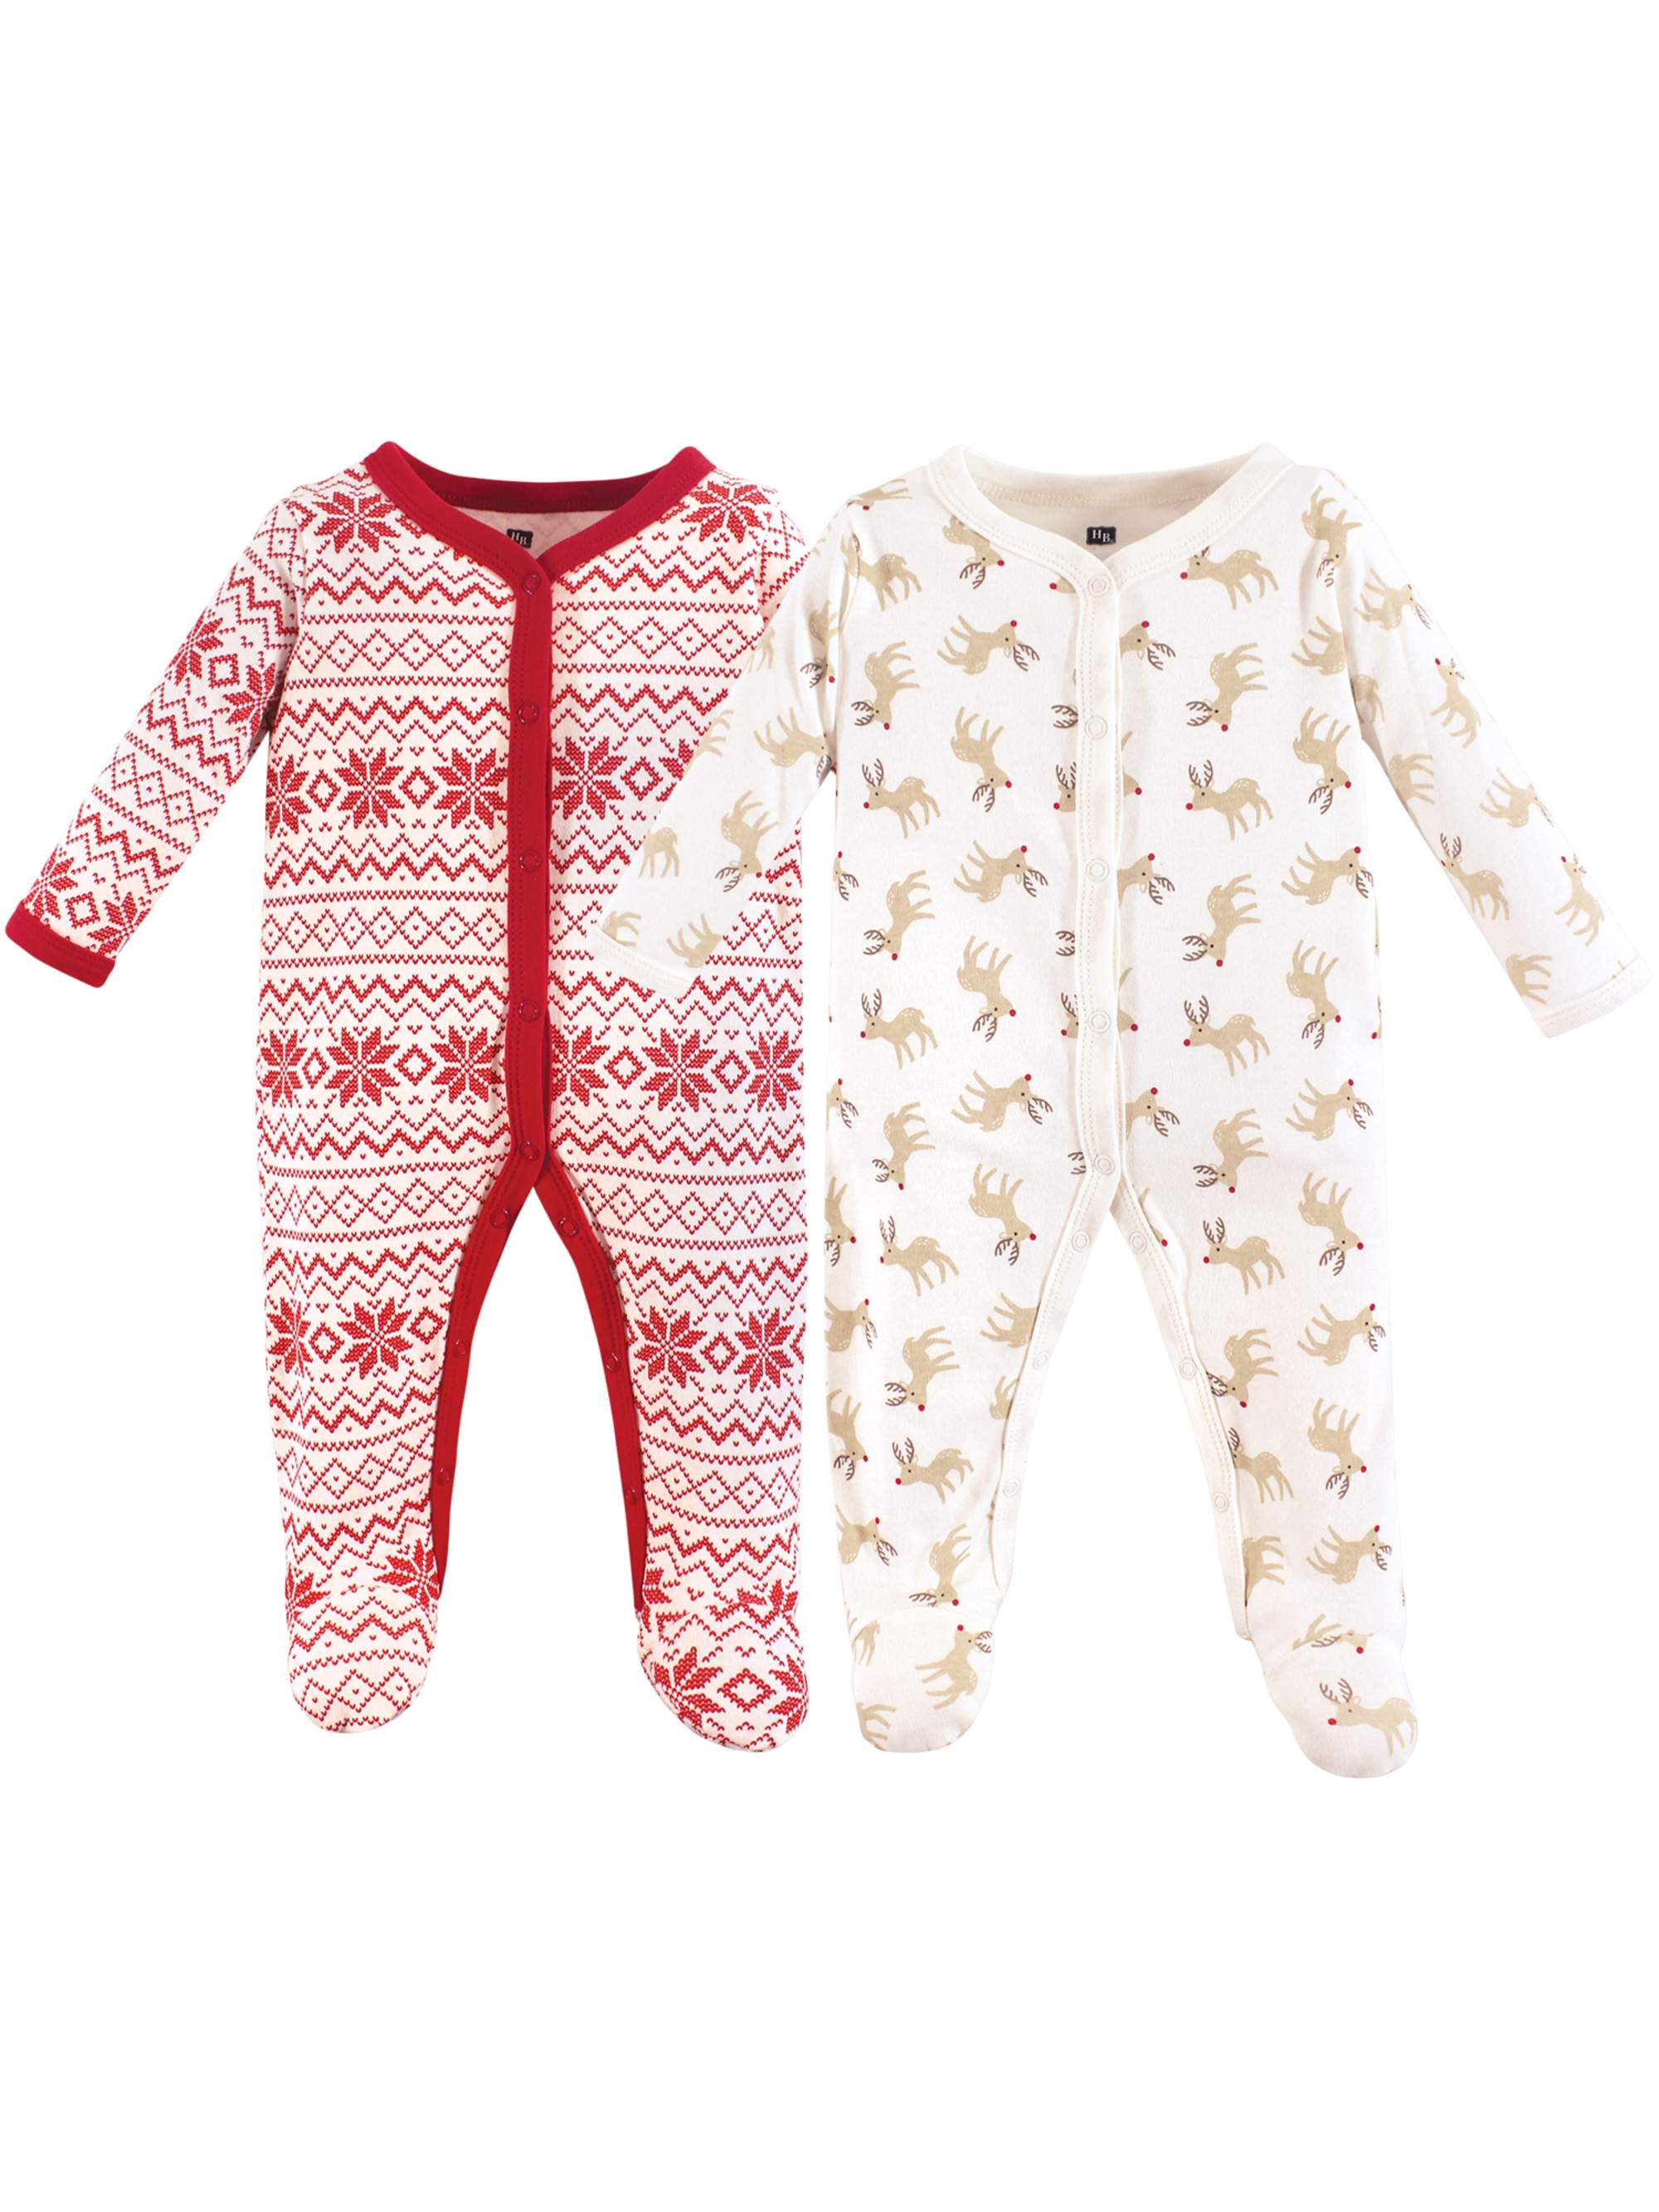 Holiday Sleep N Play Pajamas, 2pk (Baby Boys)